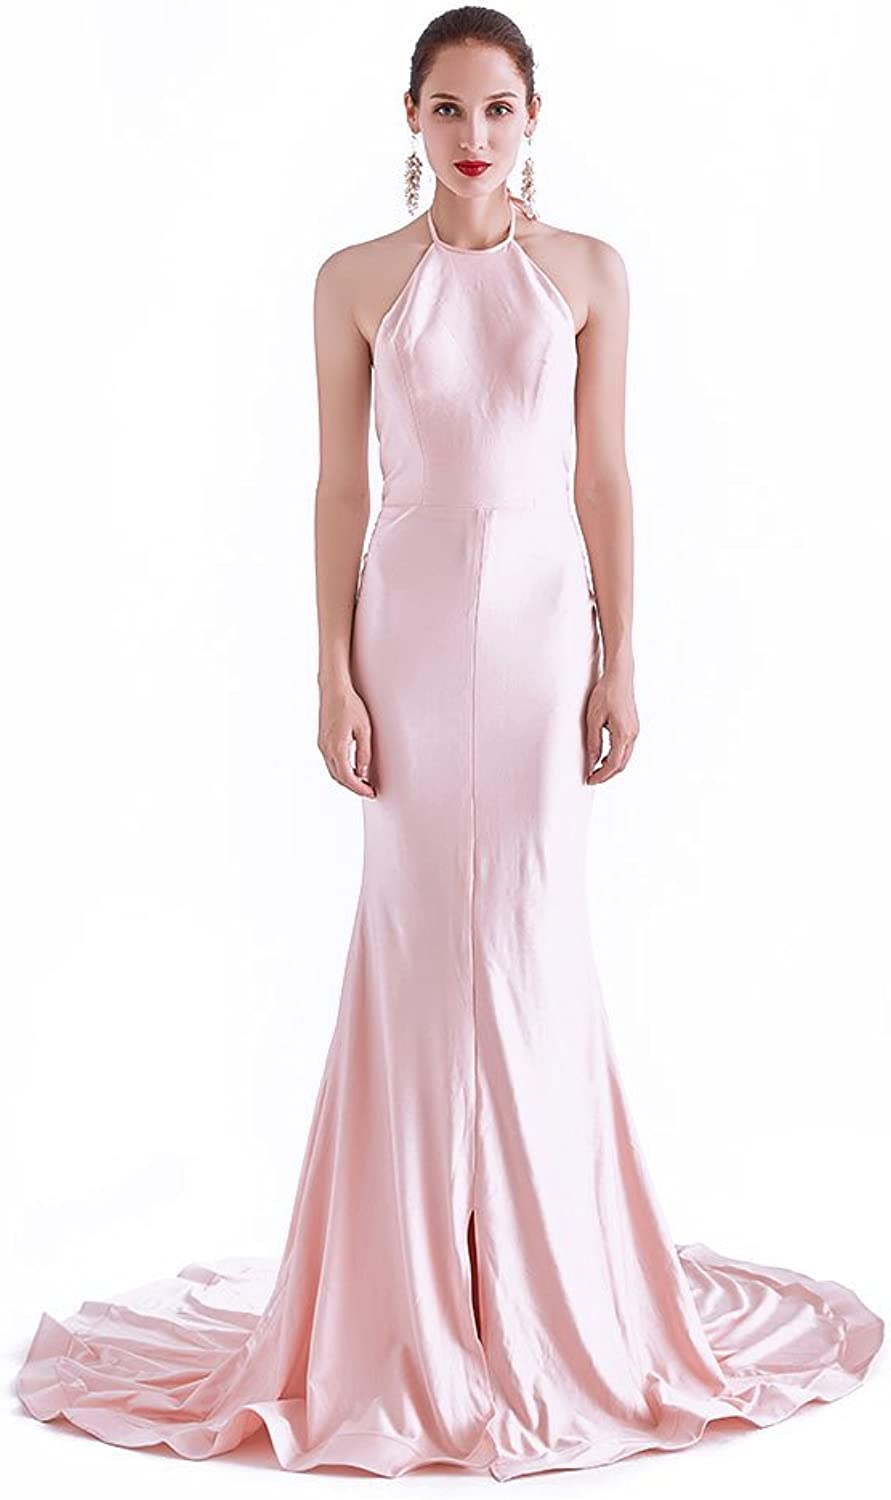 CG Chris Gelinas France CG Women's Column Halter Neck Vintage Evening Gowns for Formal Sexy Maxi Party Prom Long Dress J0260